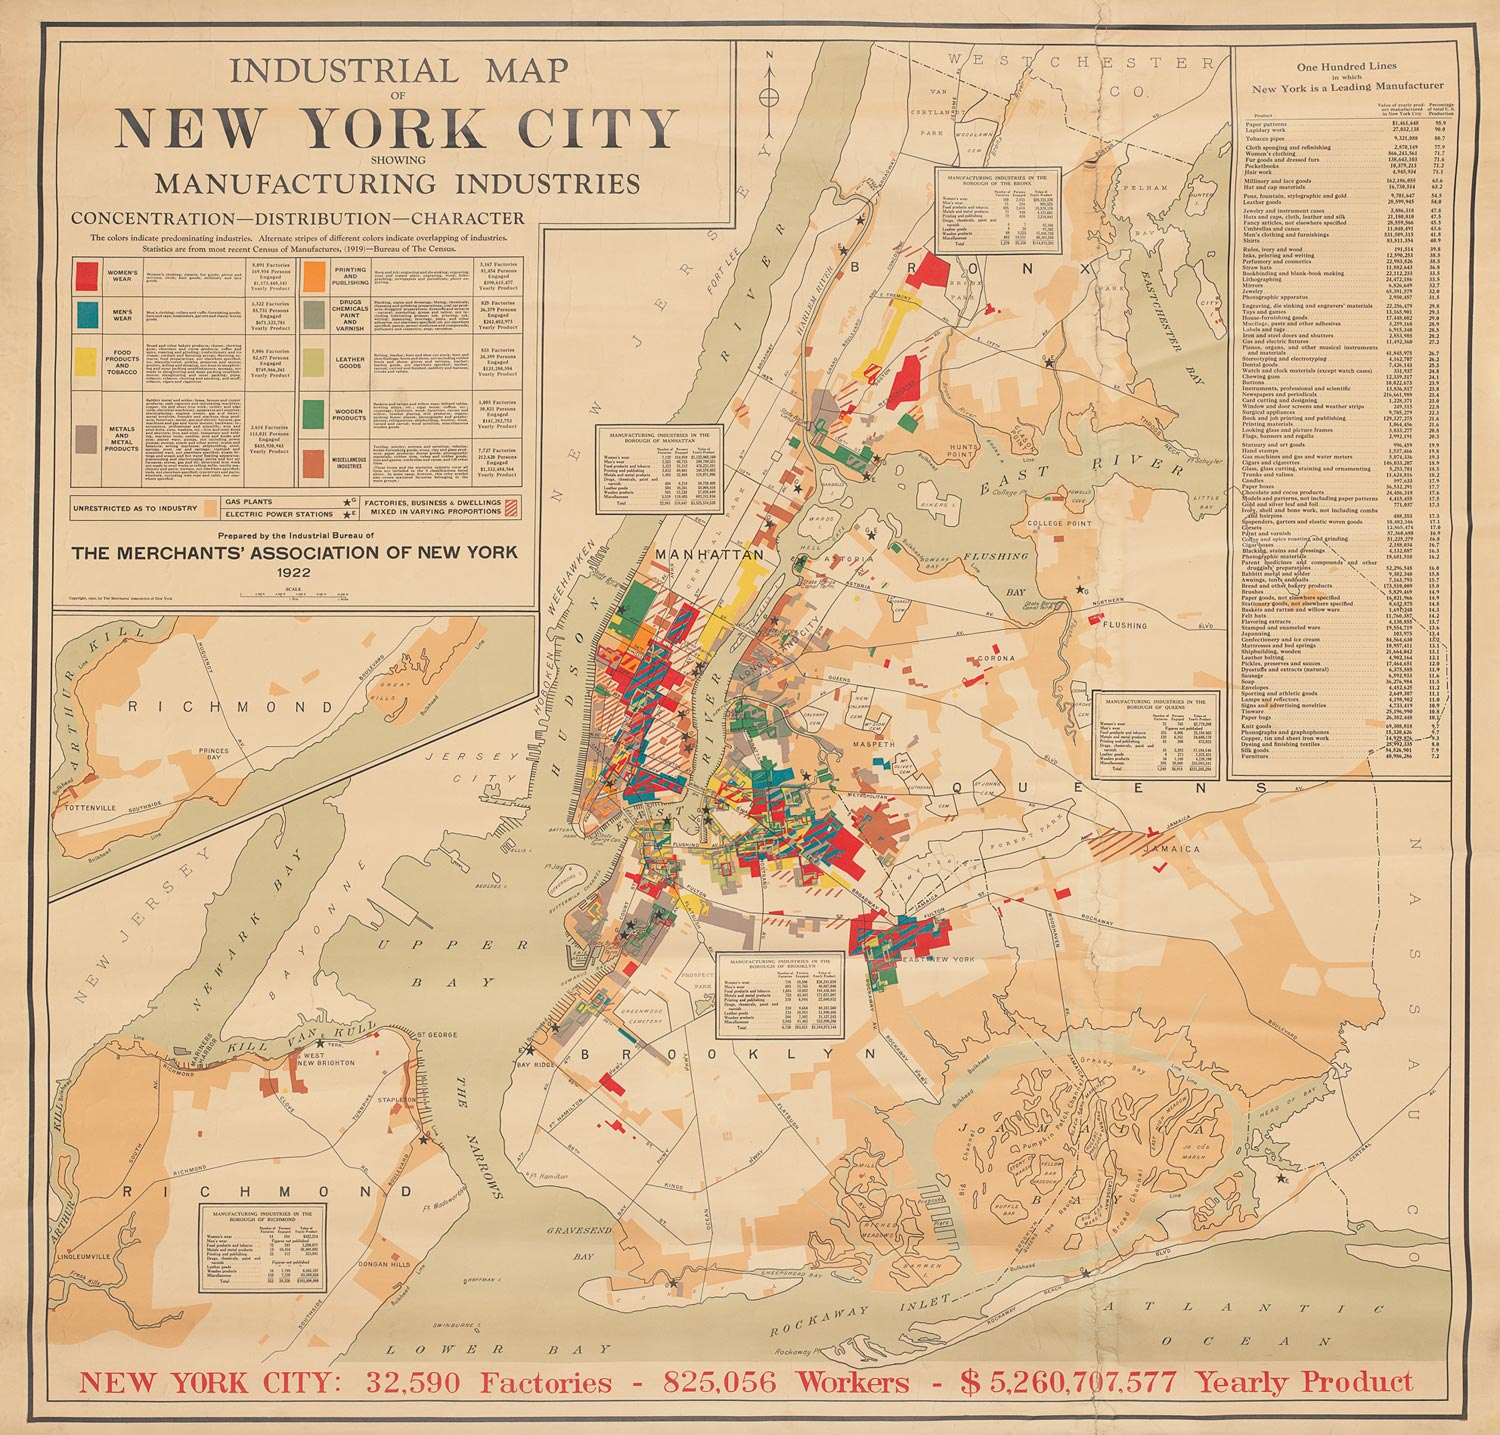 World City Manufacturing Industries Of New York